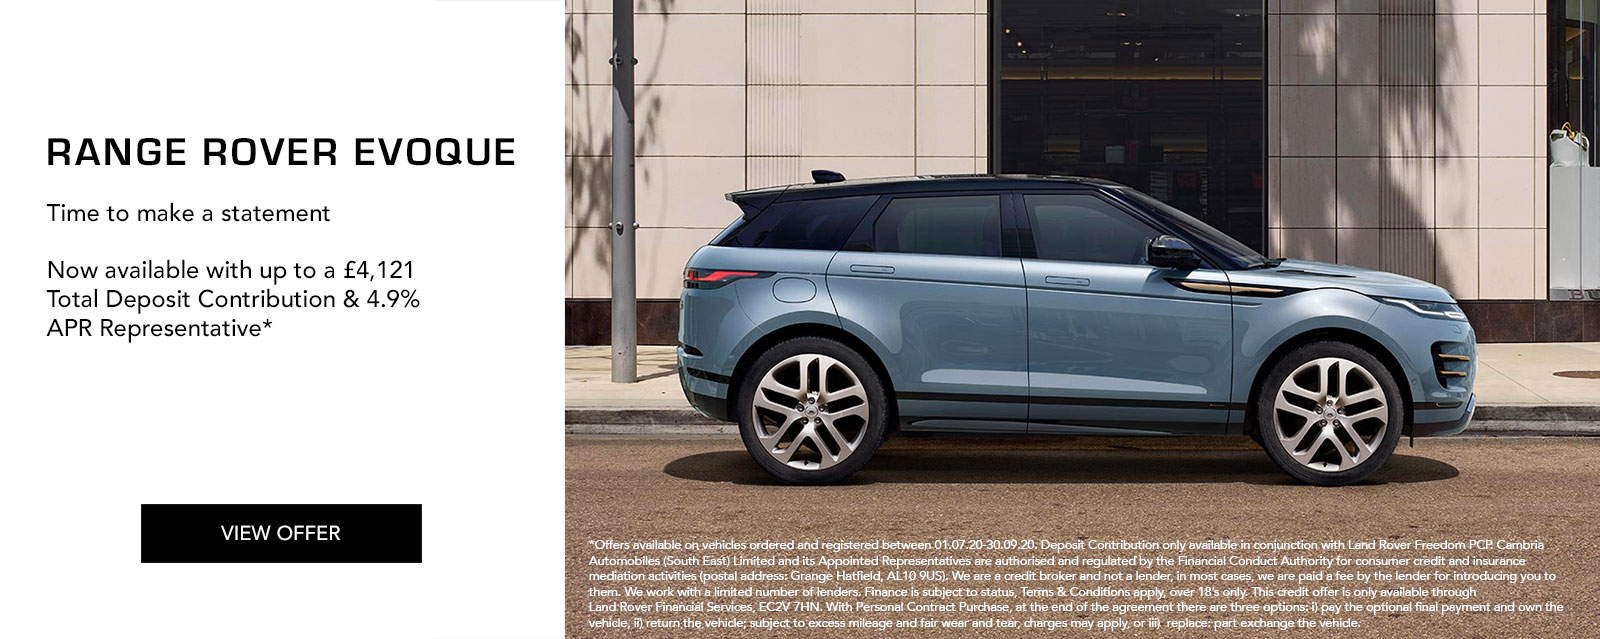 Range Rover Evoque Offer